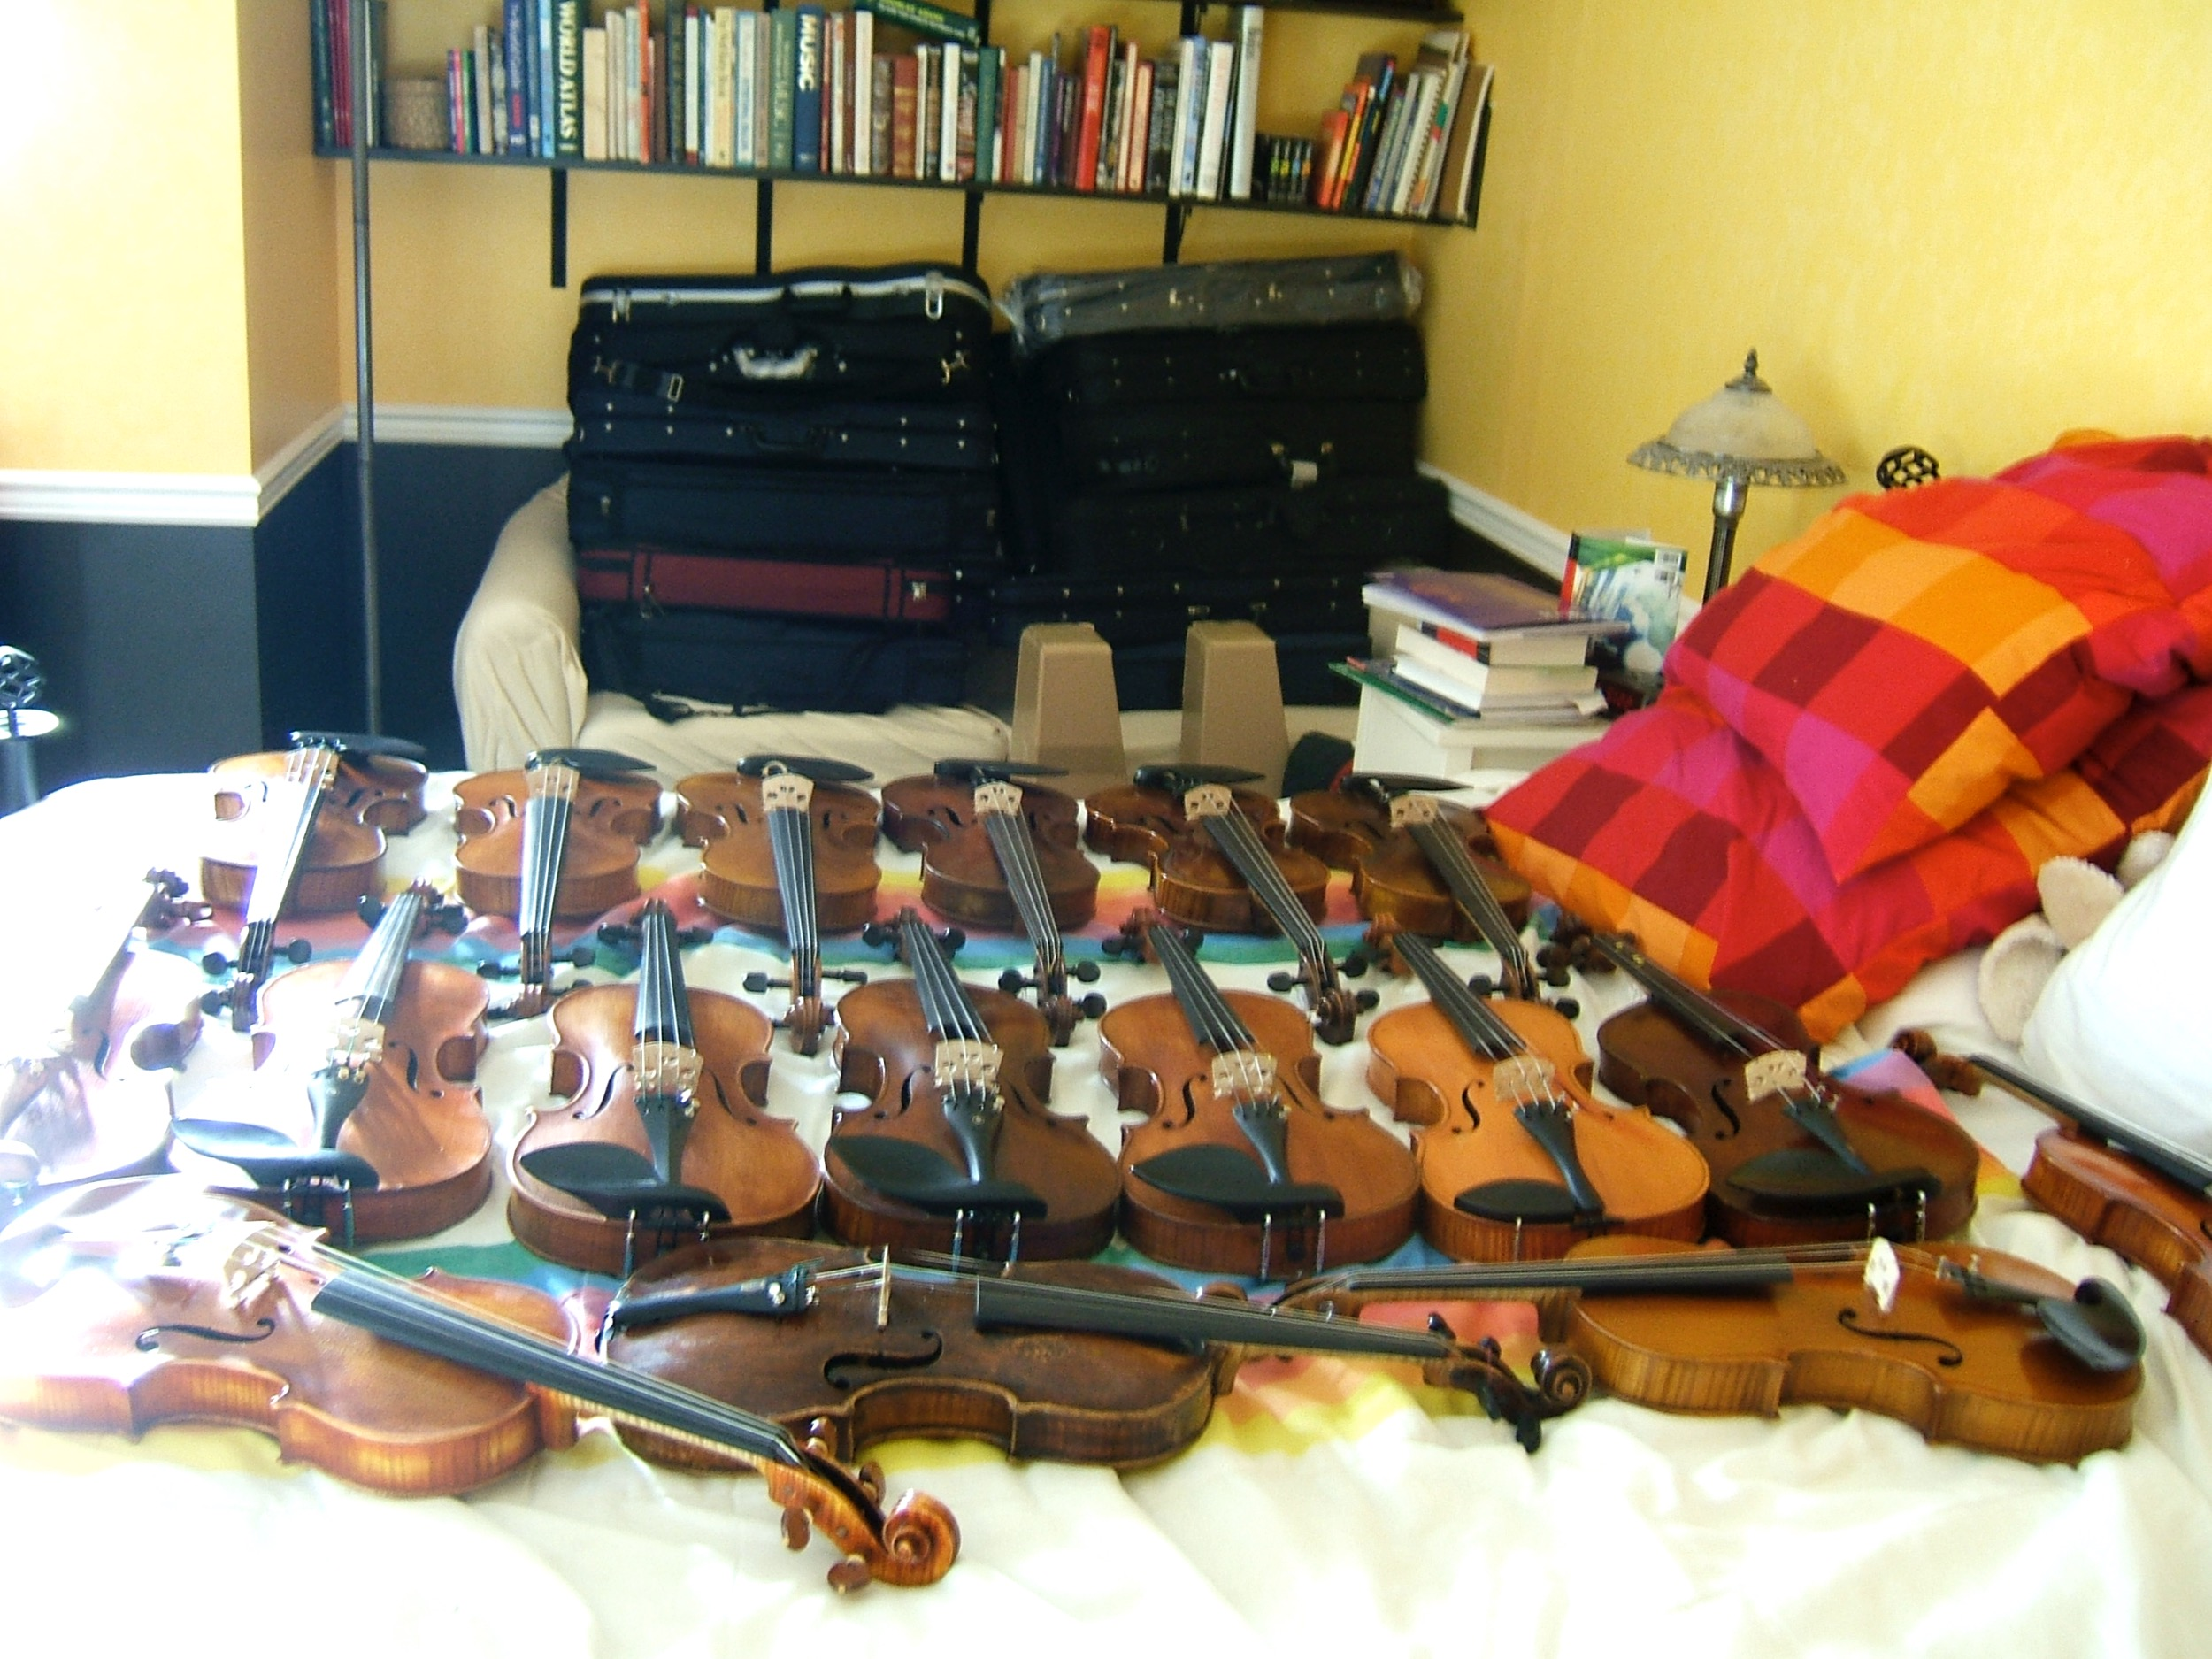 Violins and cases laid out over a bed and couch, taking up every inch of space